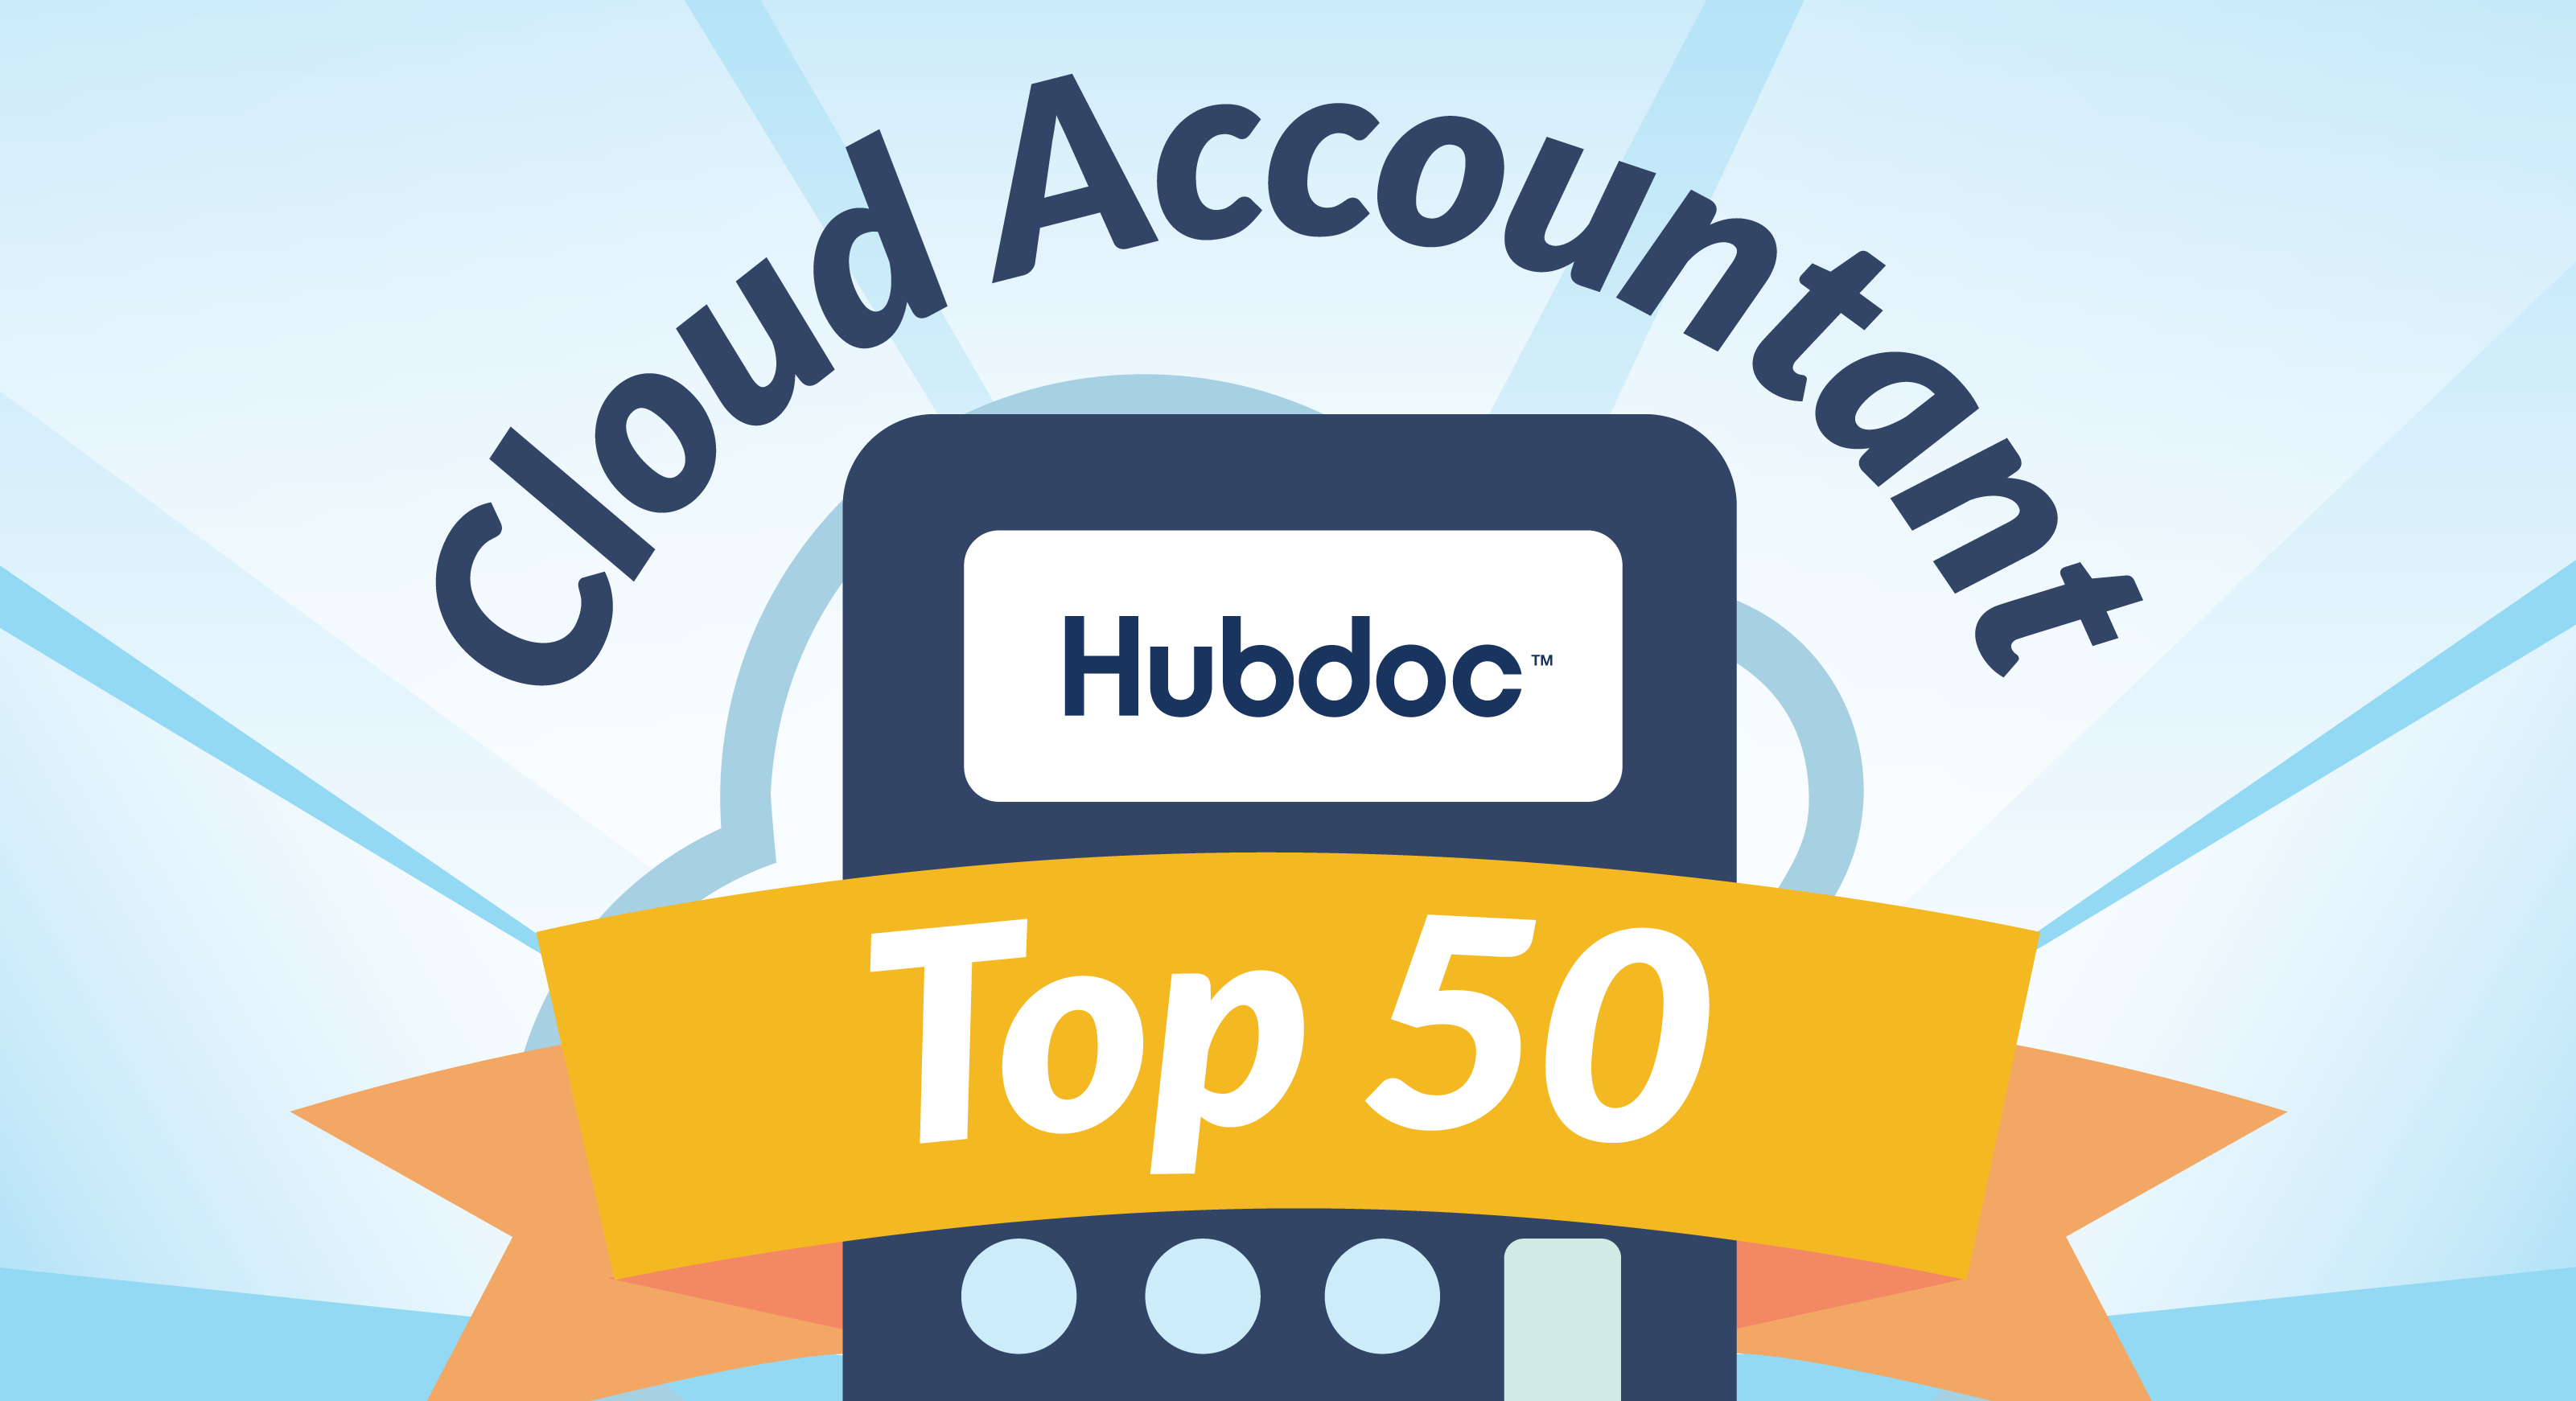 Top 50 Cloud Accountants